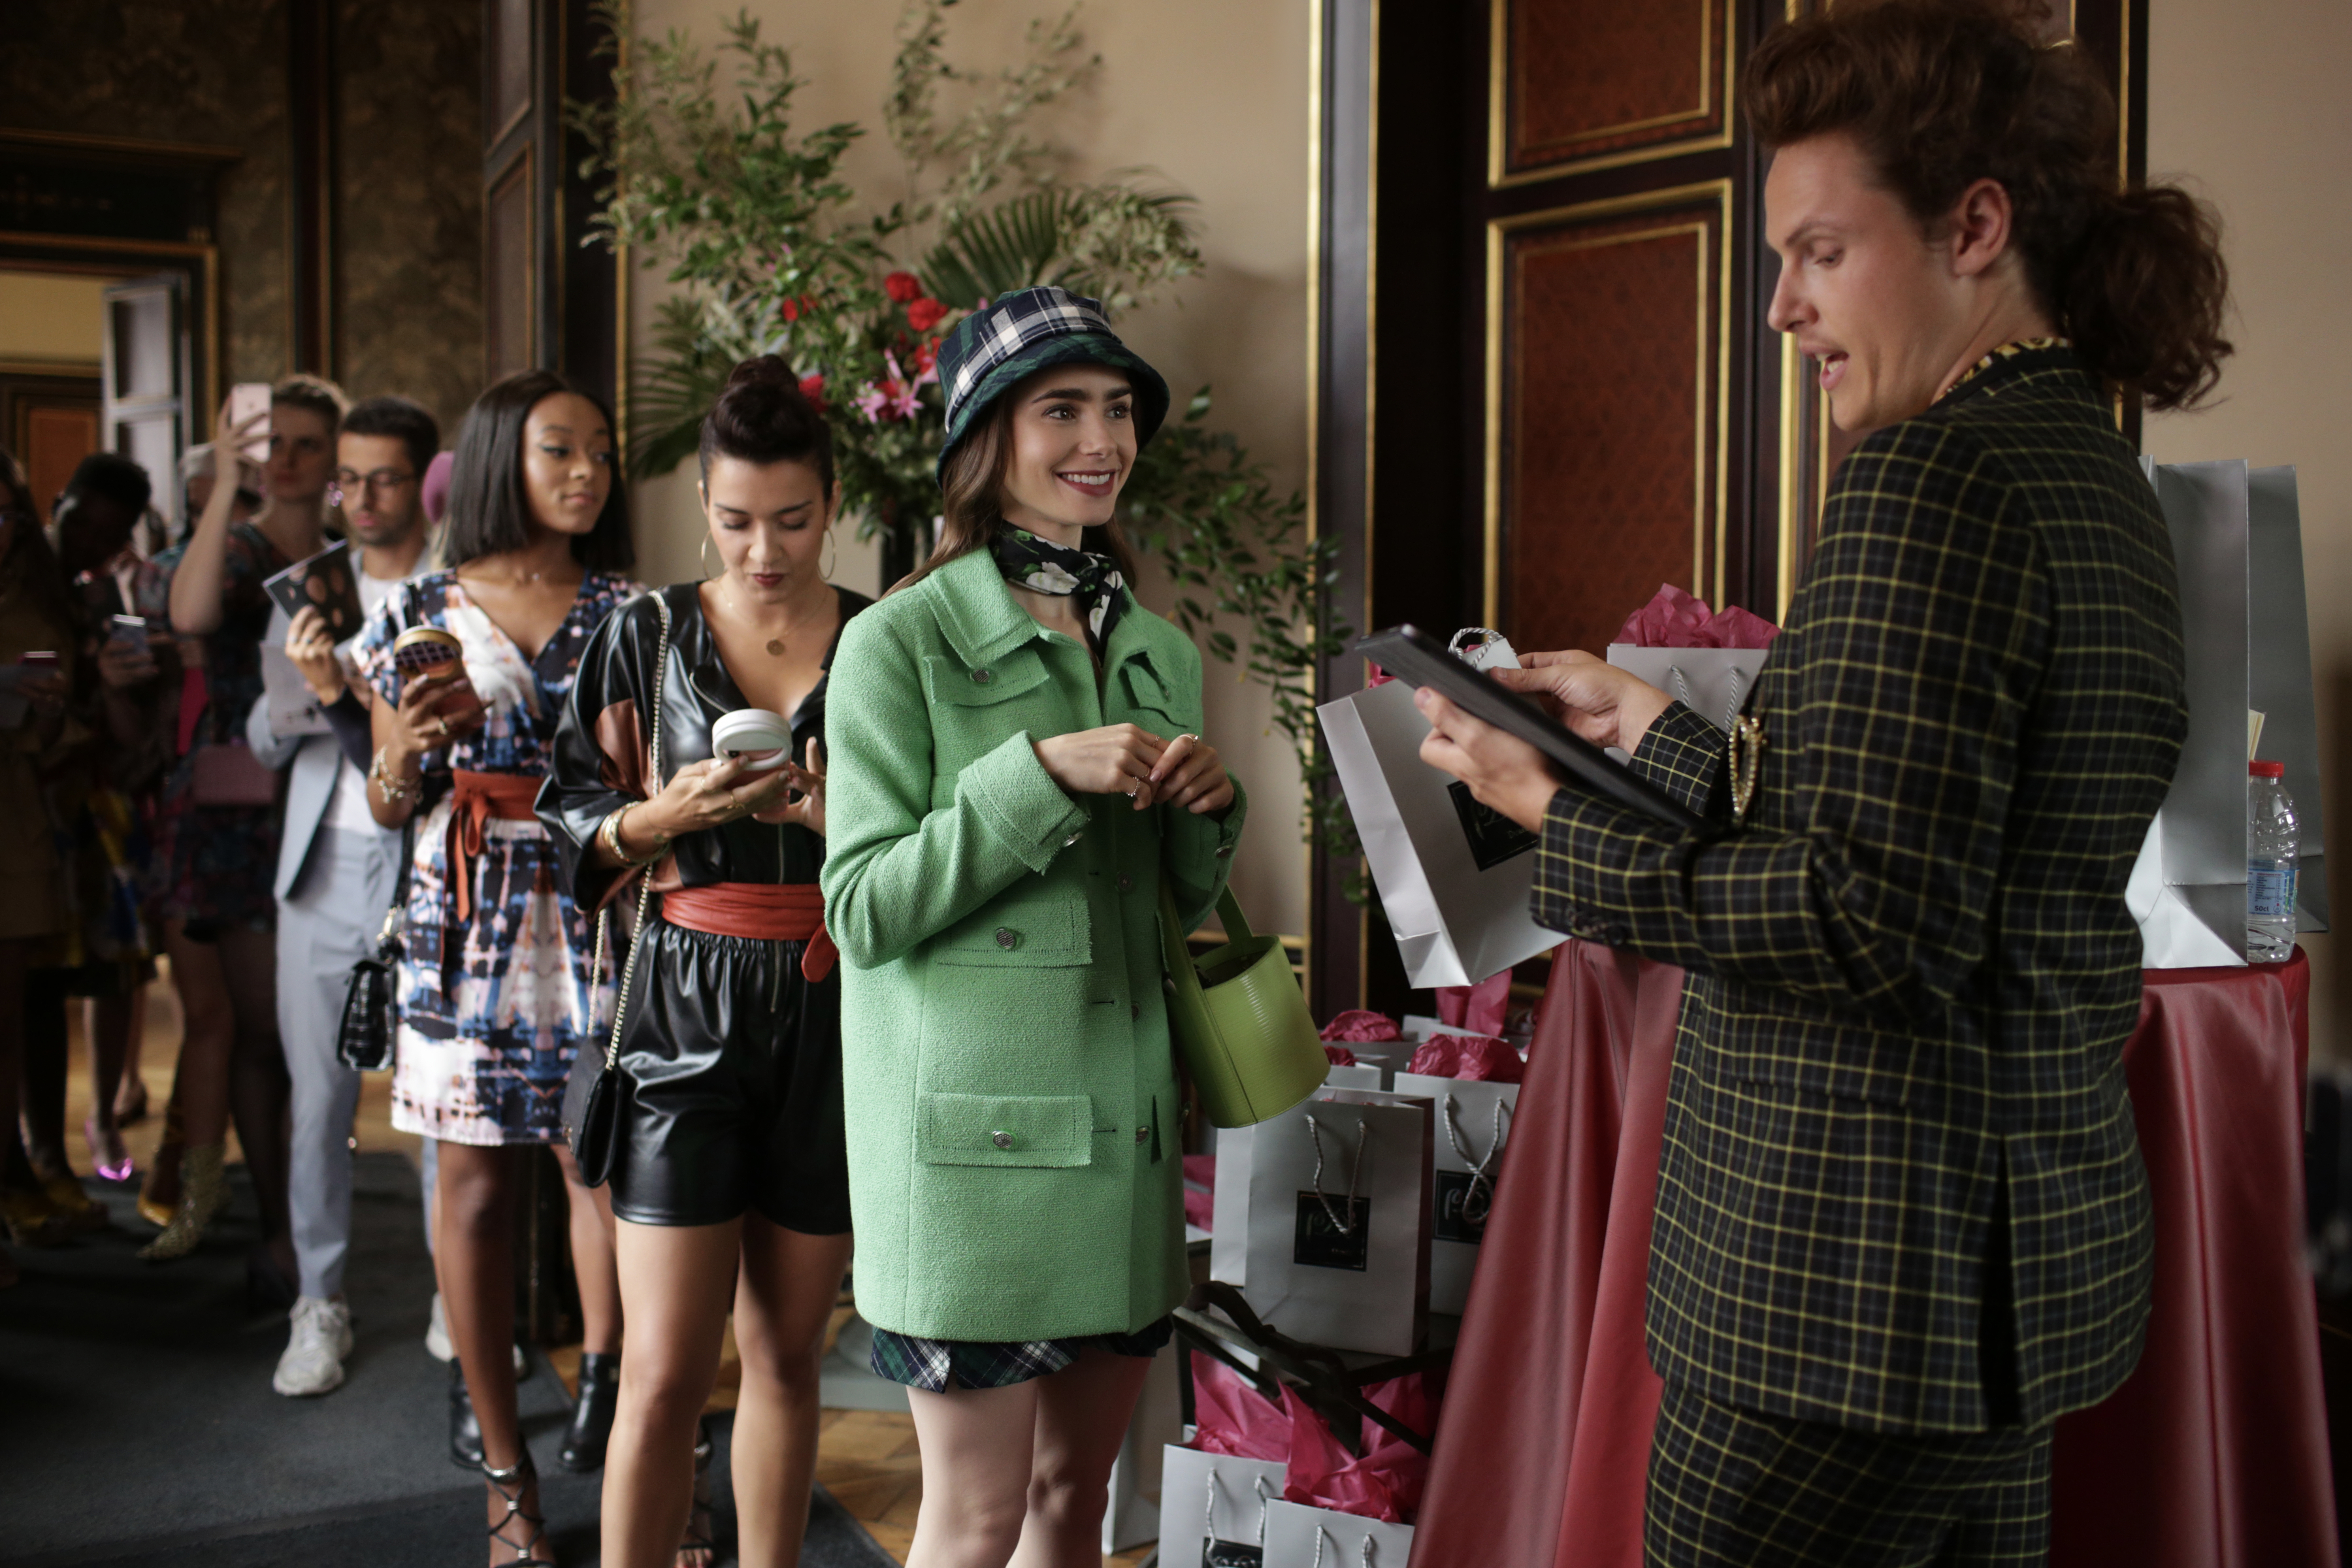 [Image description: Emily, wearing a green coat and a hat, stands in line ahead of other girls who are all dressed fashionably and holding their phones] Via Netflix